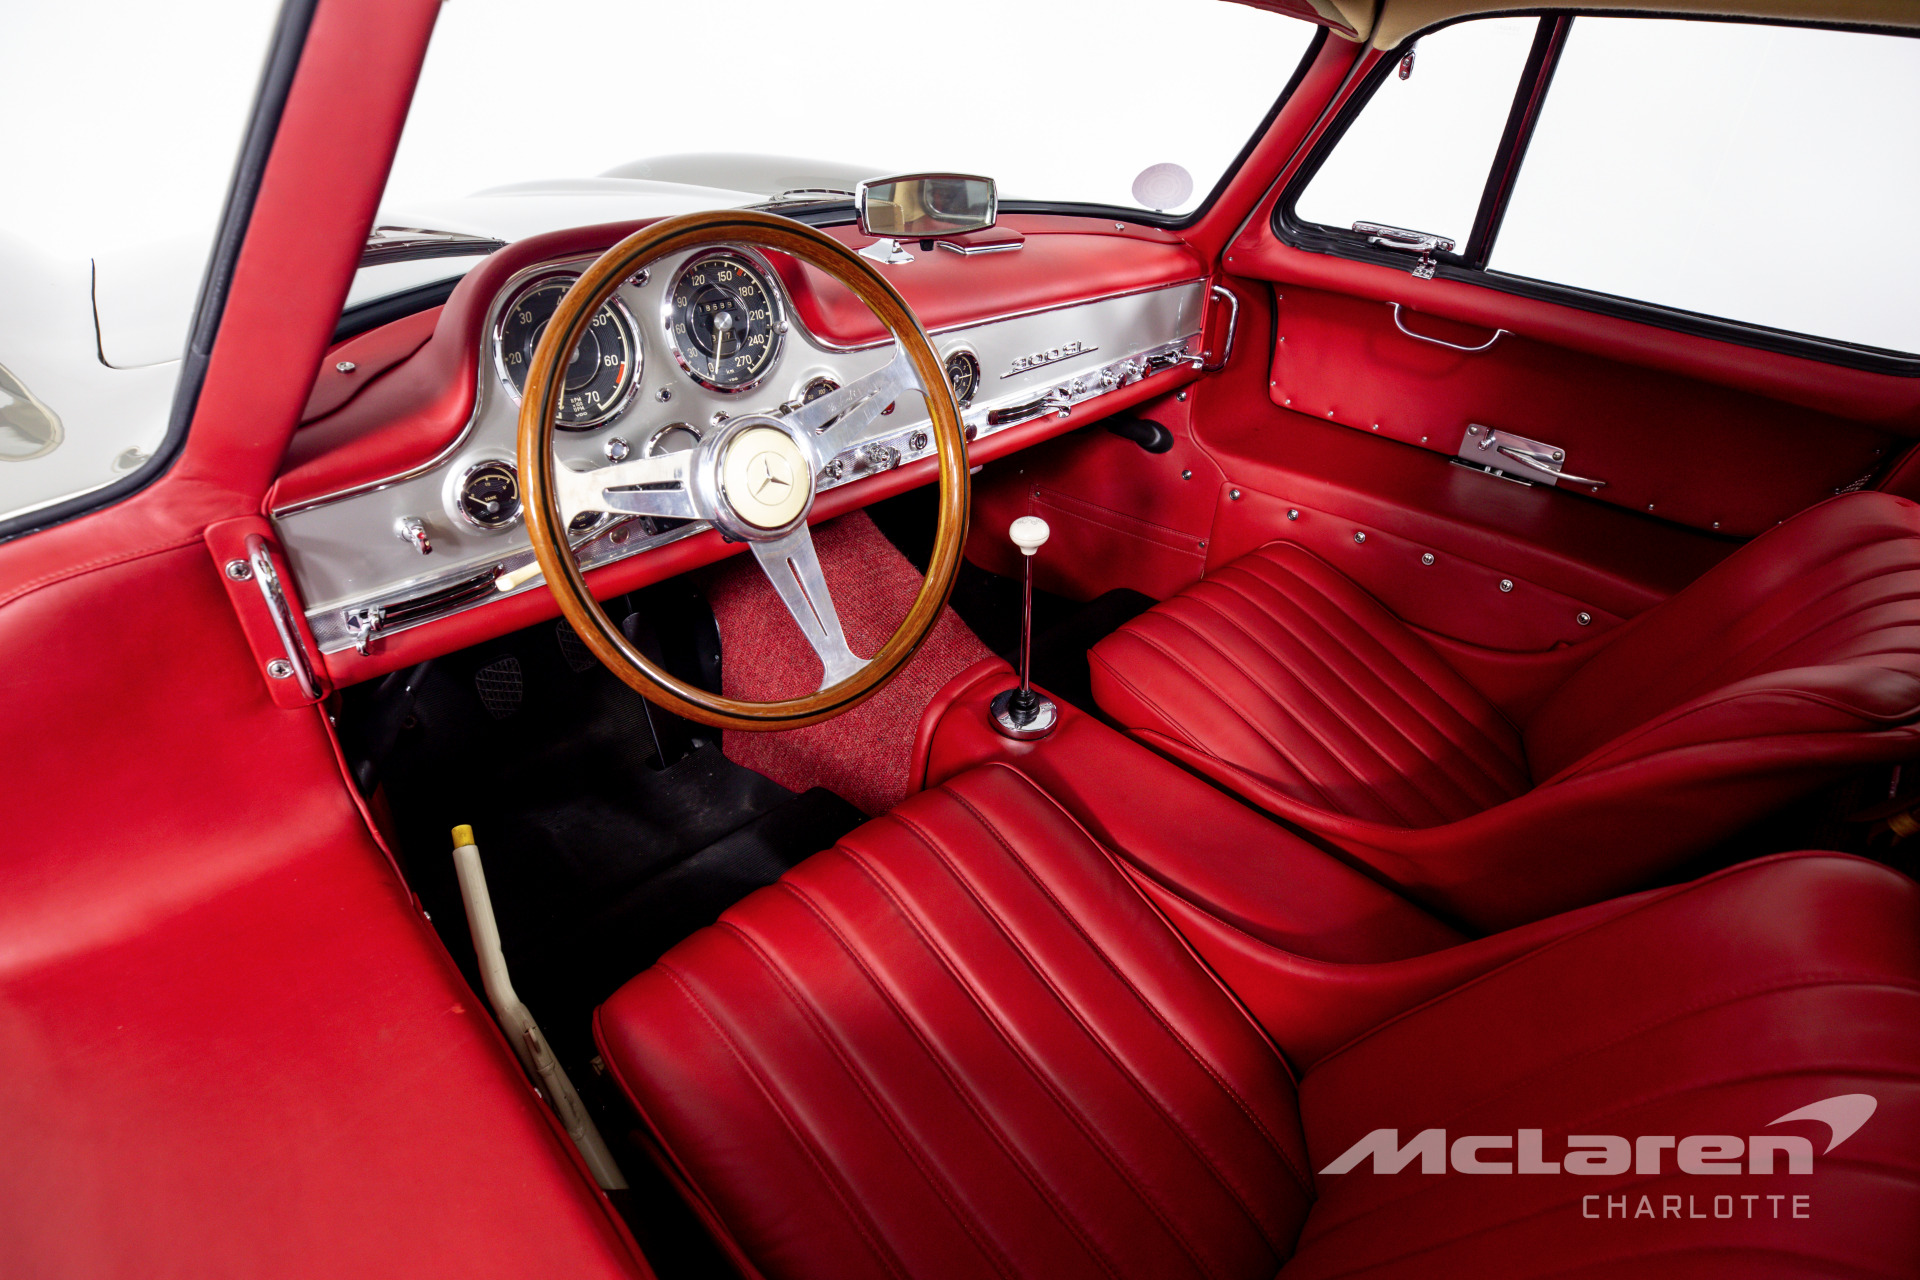 Used 1955 MERCEDES-BENZ 300 SL GULLWING | Charlotte, NC